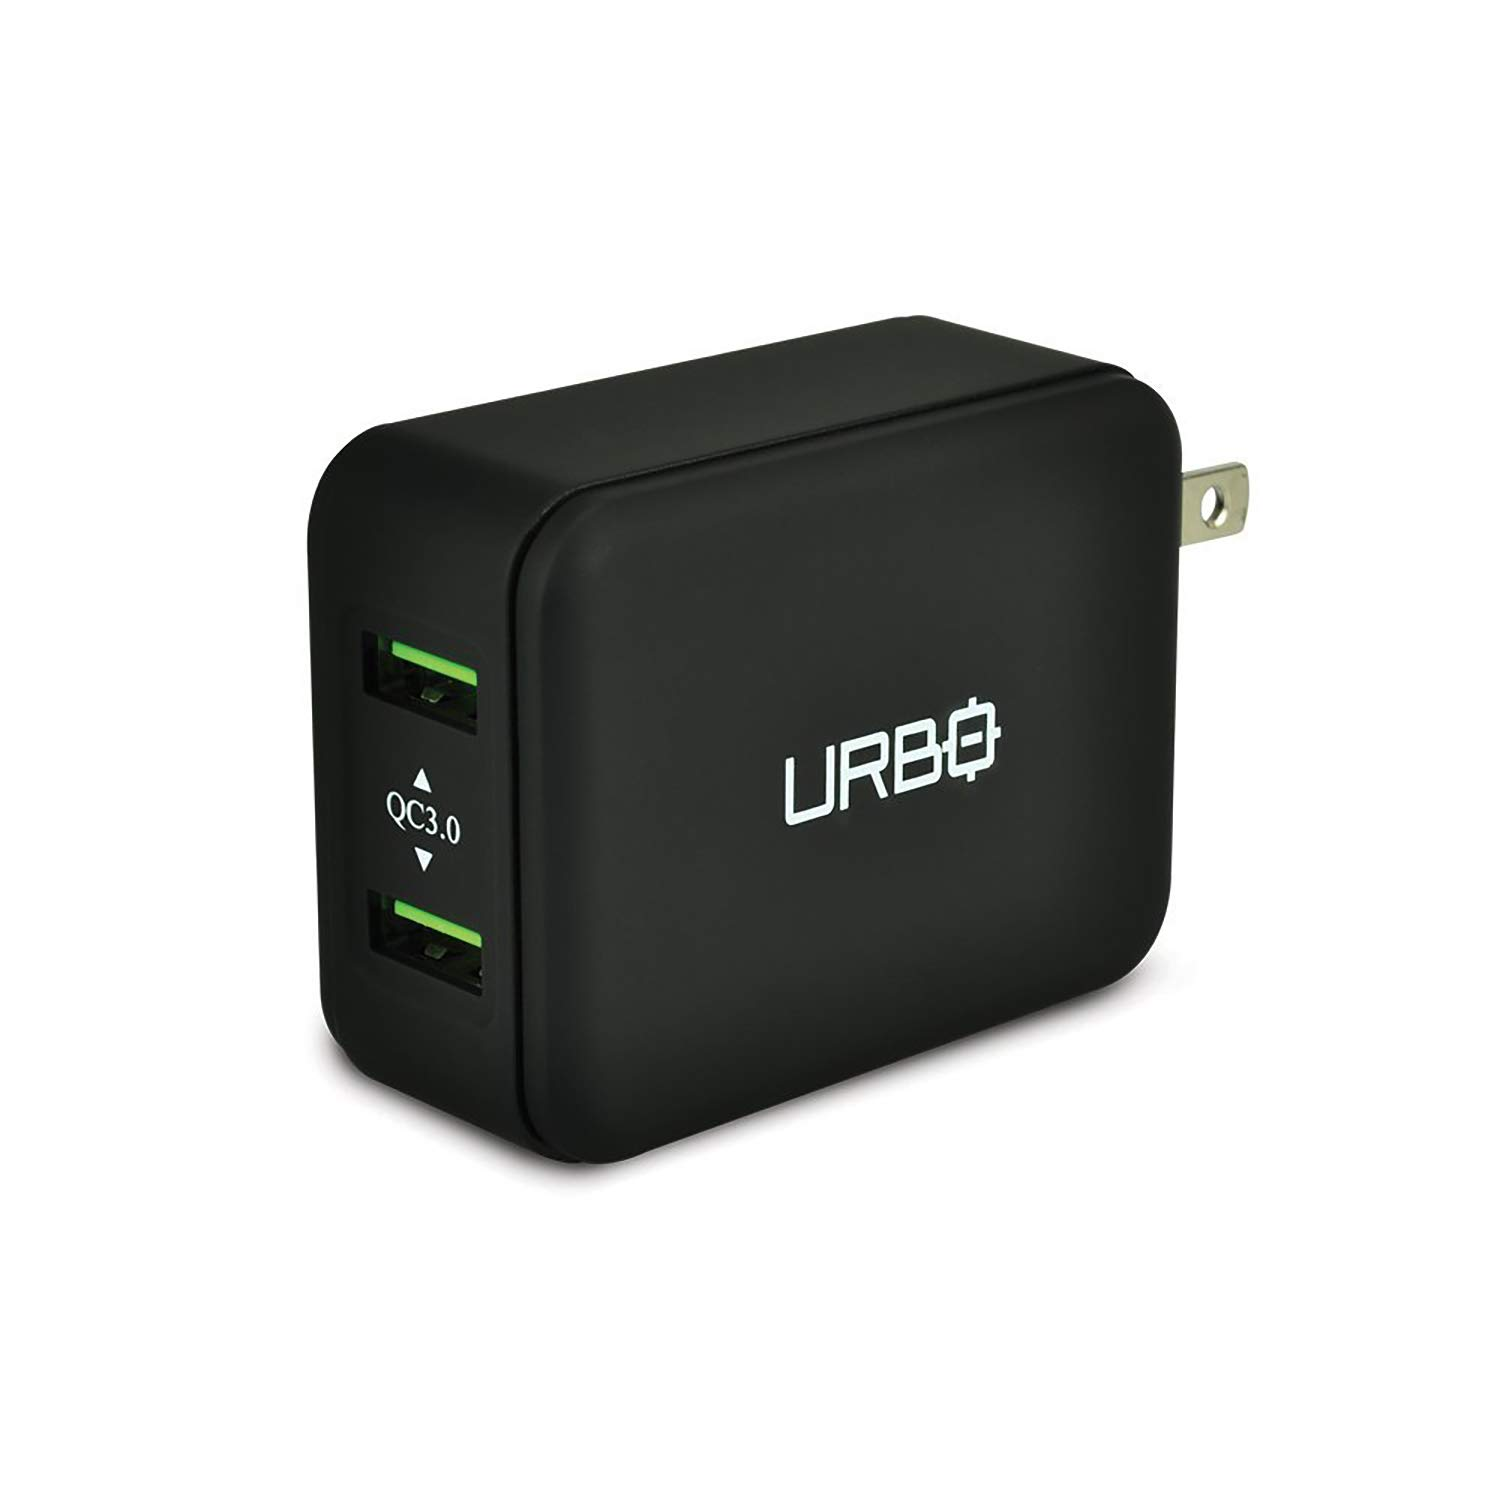 Urbo Quick Charging 3.0 Dual-USB Foldable Travel-Friendly Wall Plug for QC 3.0 Compatible Phones, Smartphones, GPS and Other USB Powered Devices